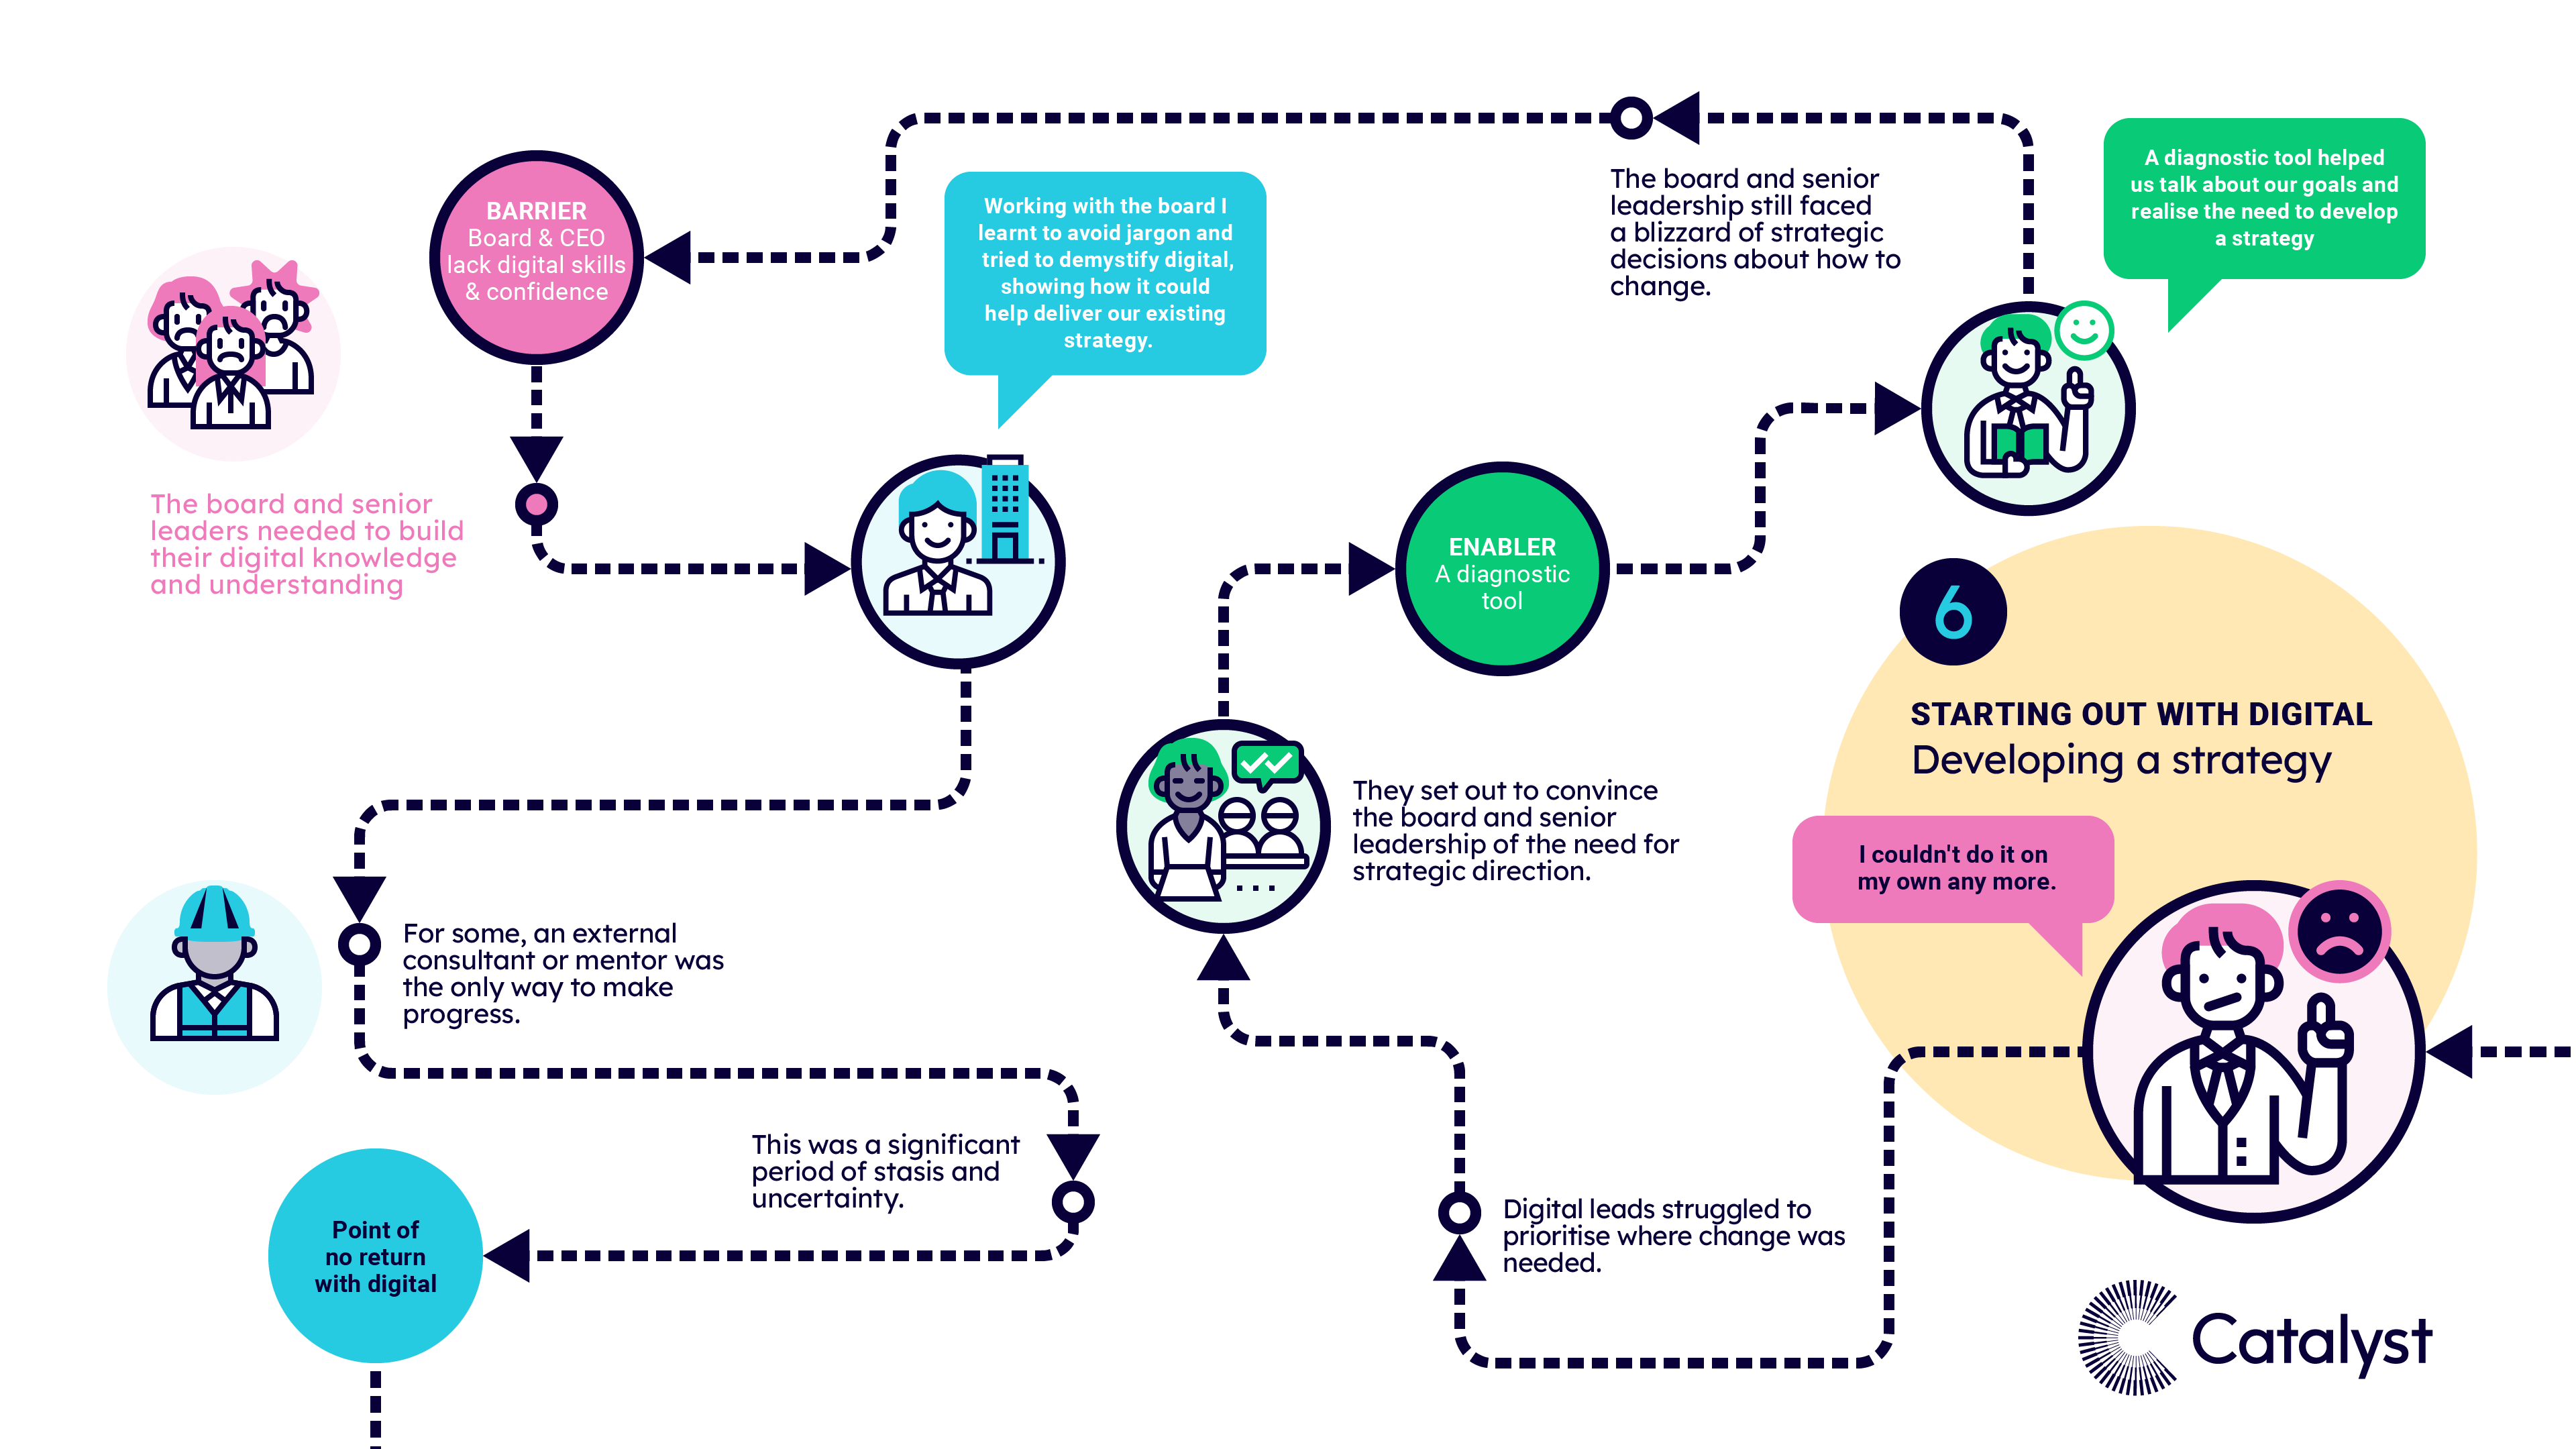 A visual map of pattern 6, when charities were starting out and developing a strategy for digital.